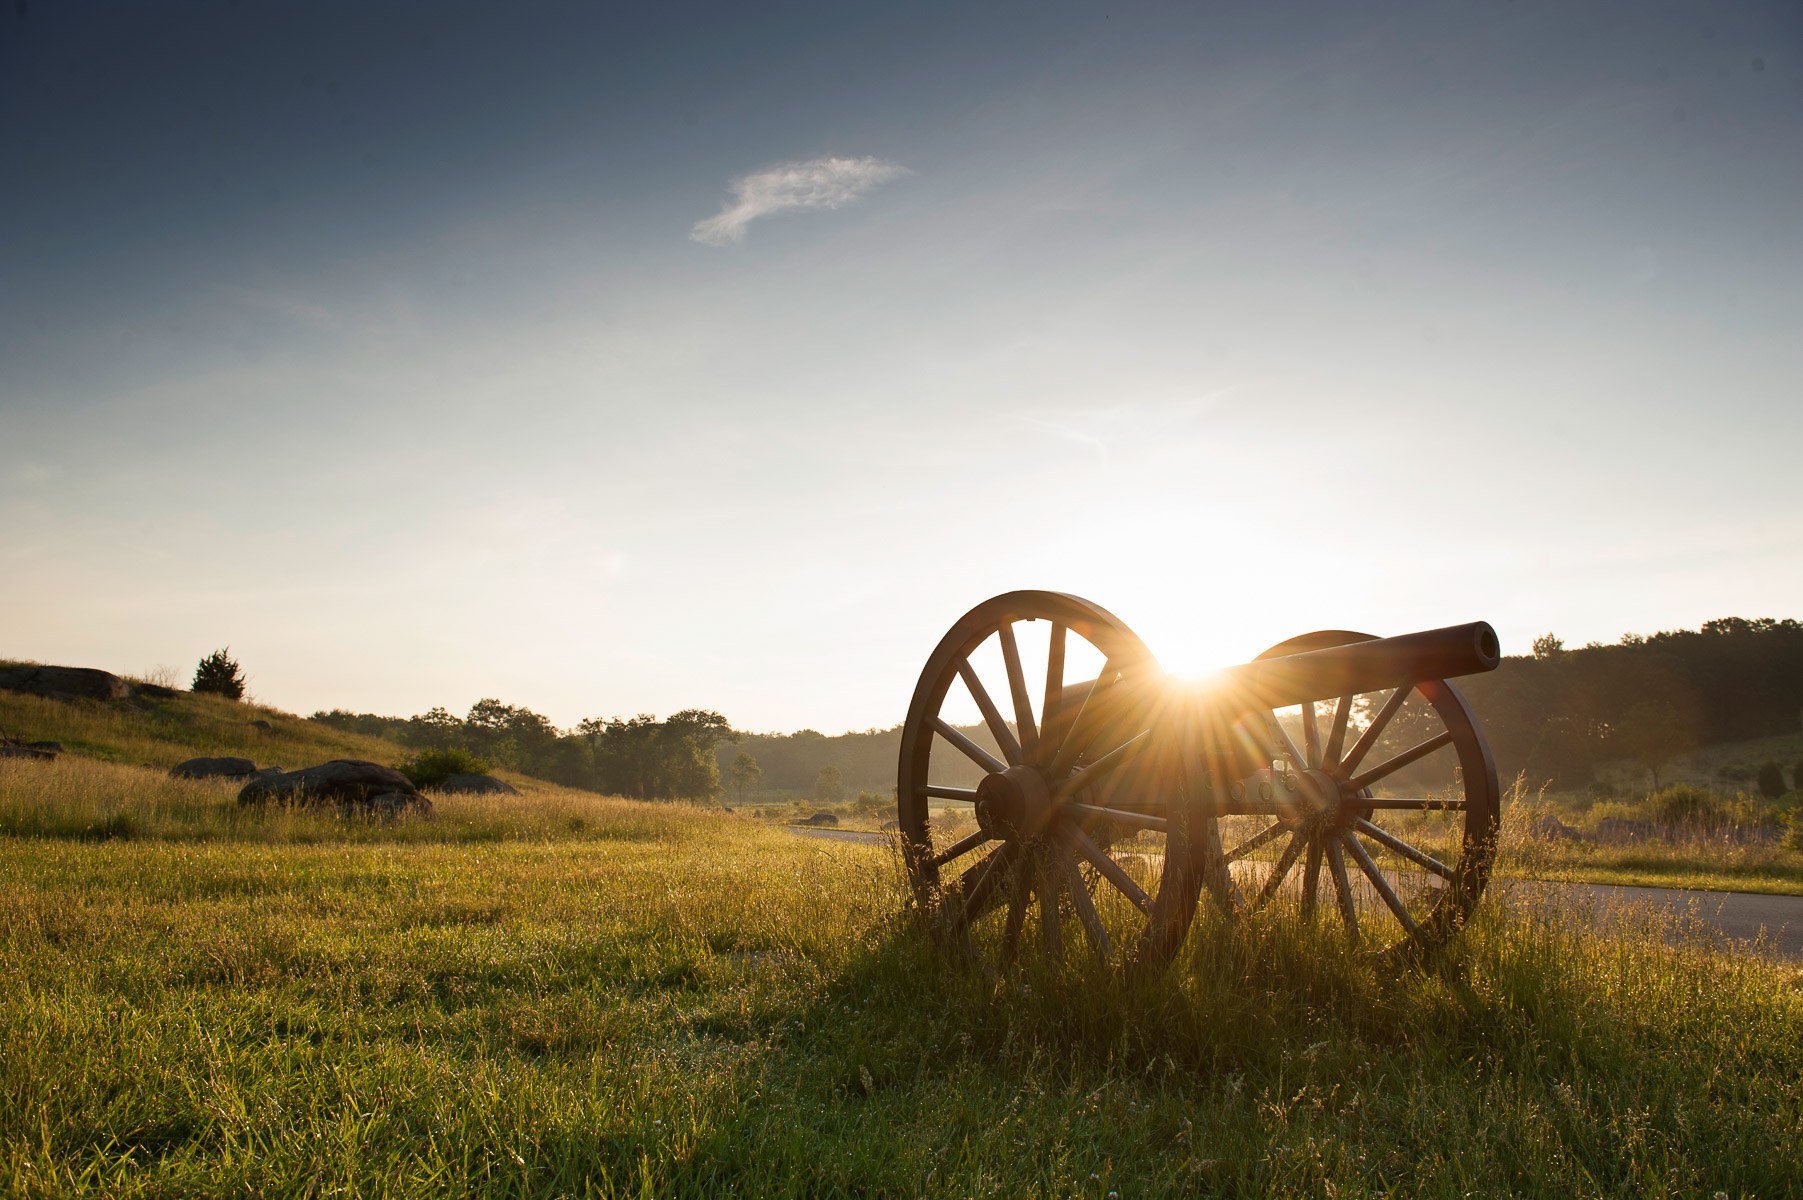 Canons are placed near Little Round Top one of the most scenic sites on the 24-mile auto tour winding through the Gettysburg National Military Park in Pennsylvania. May 31, 2013. VANESSA VICK FOR THE NEW YORK TIMES